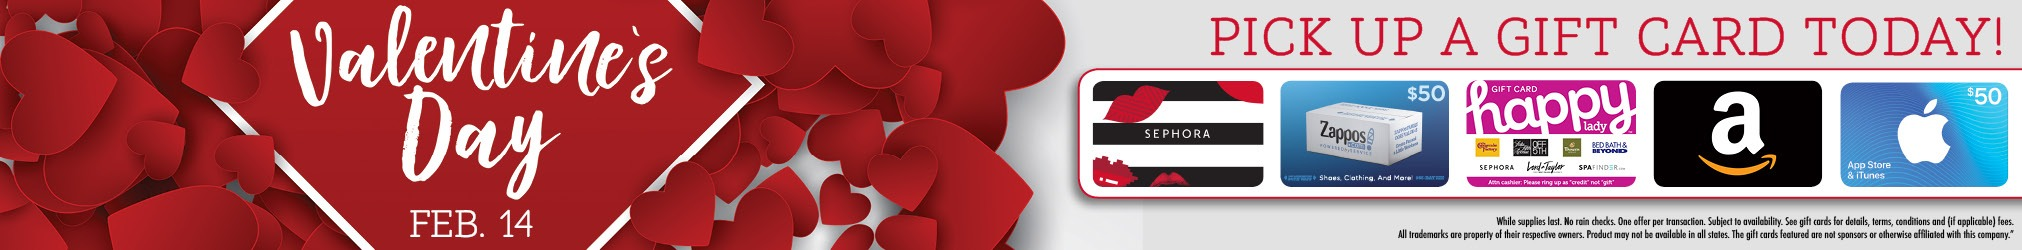 Valentines's Day - Feb. 14 - Pick up a gift card today!